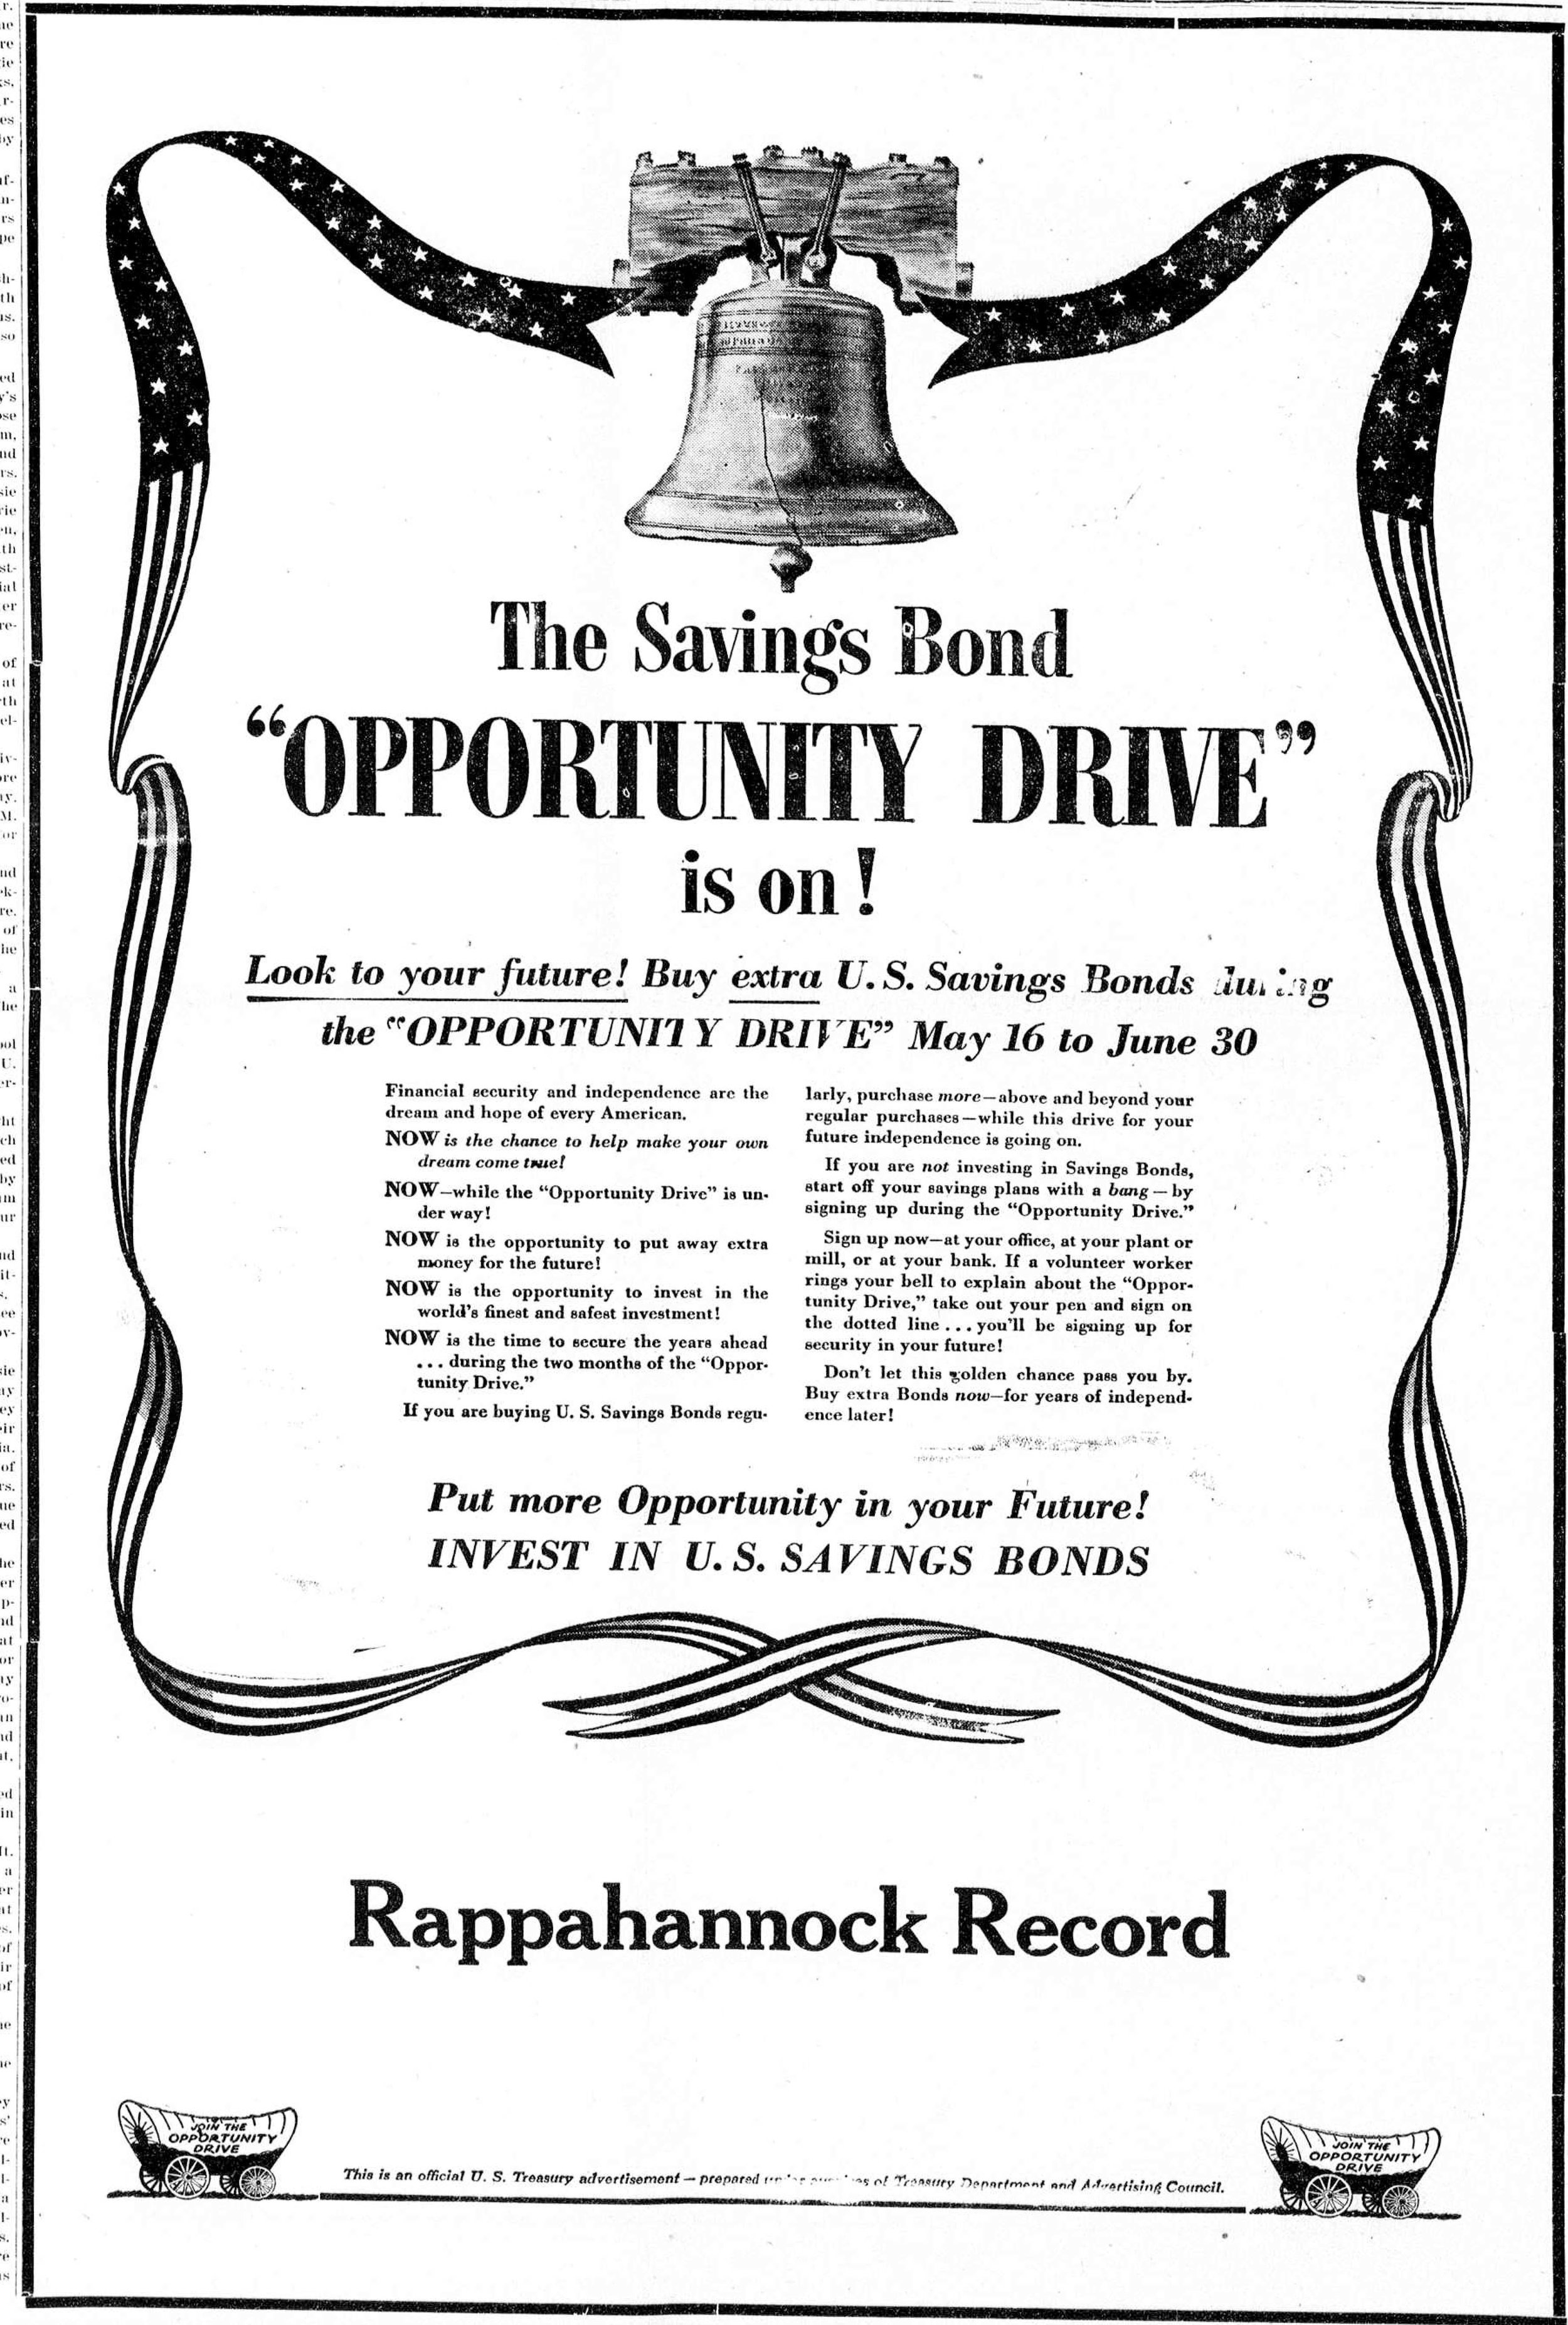 Bond ad from the Rappahannock Record (Virginia)